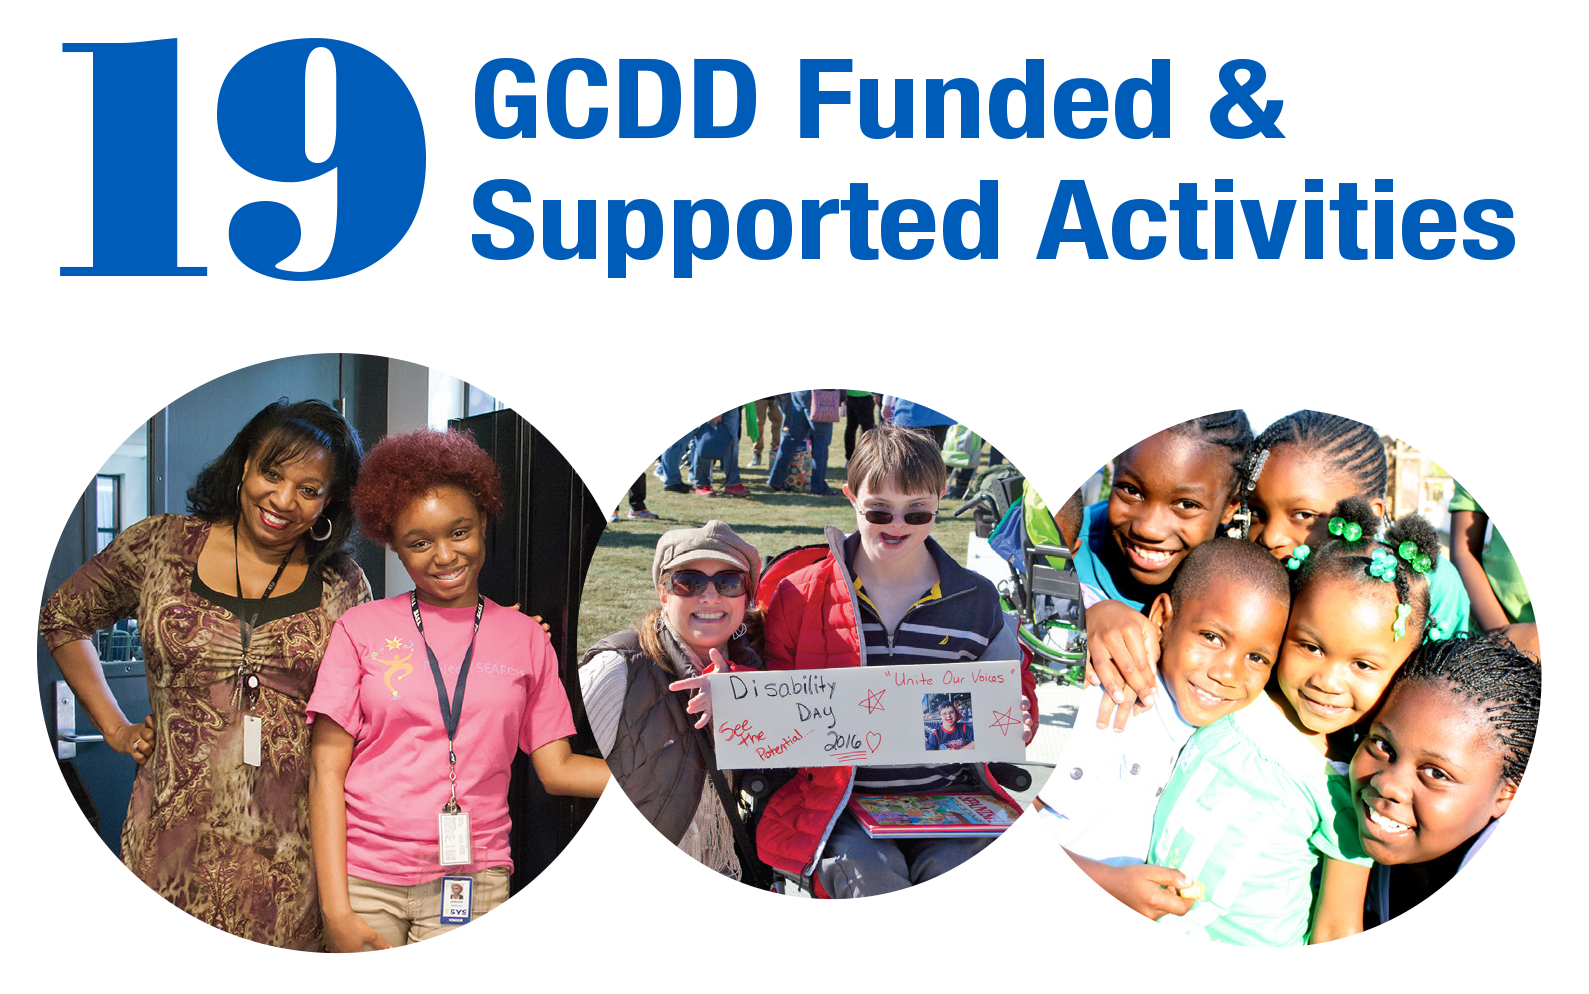 19 GCDD Funded and Supported Activities FY2016, photos from Project SEARCH, Disability Day and Real Communities